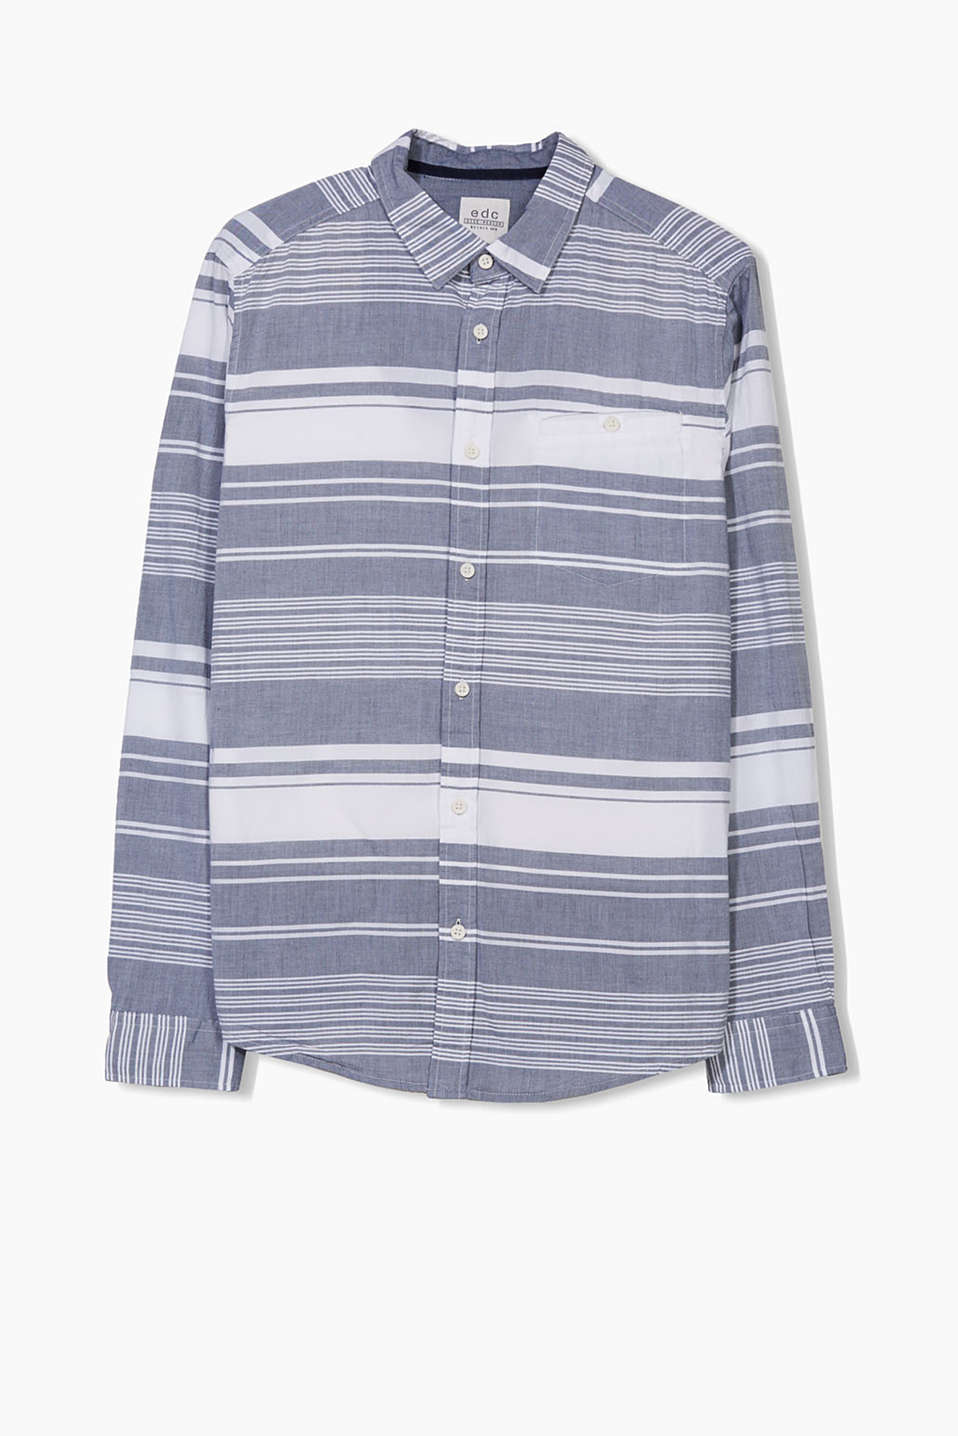 In a striped look: shirt with a narrow collar in 100% cotton